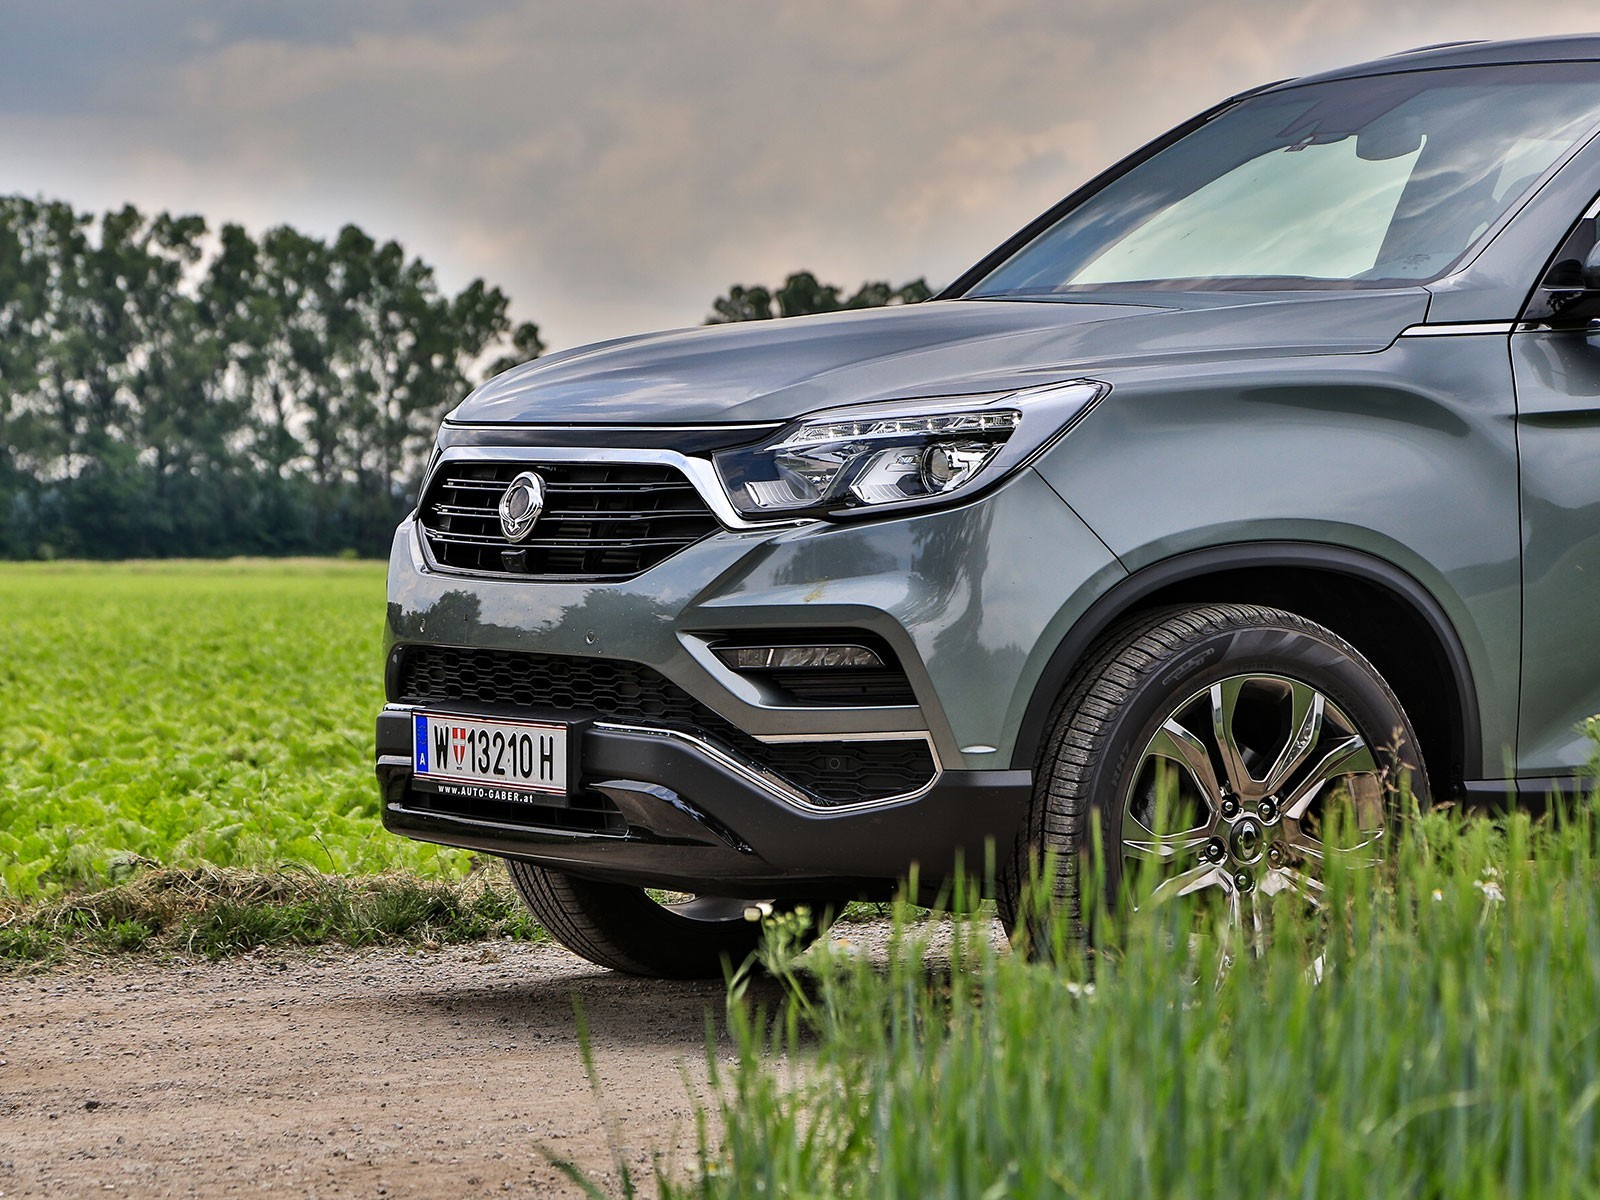 Ssangyong rexton g4 2 2 4wd at icon testbericht 022